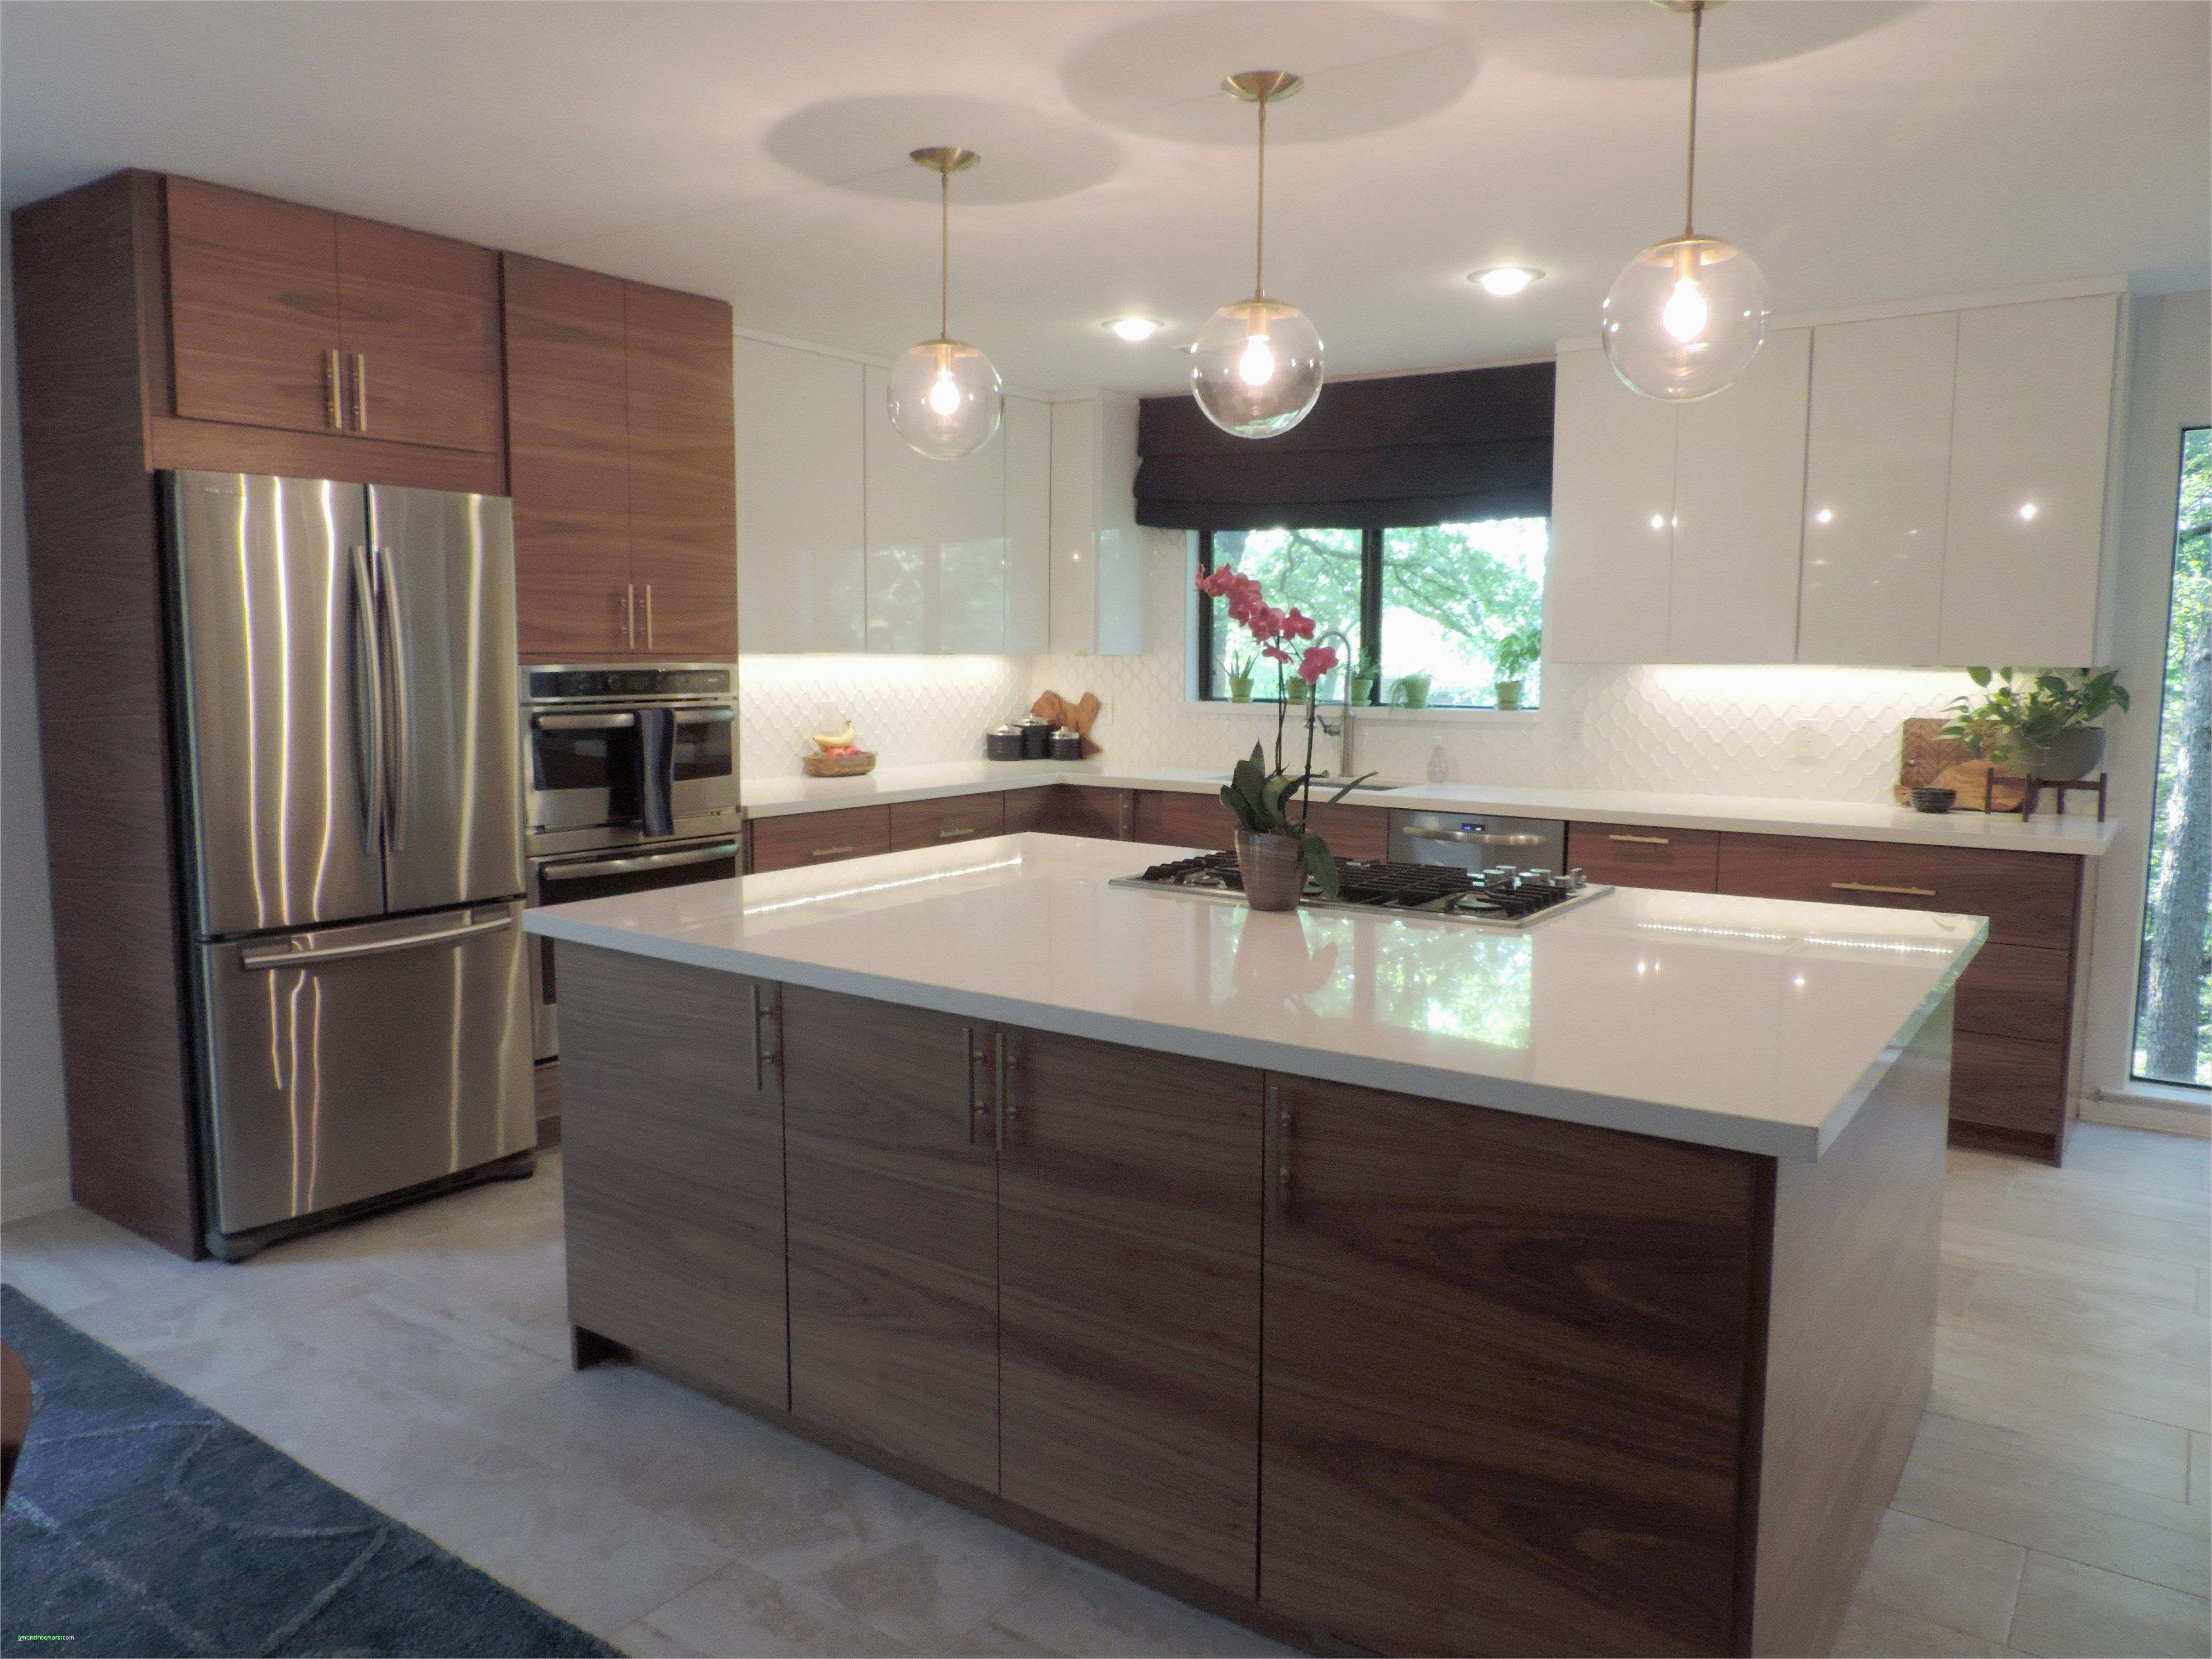 24 Lovely Cost to Restain Hardwood Floors 2021 free download cost to restain hardwood floors of neutral kitchen cabinets ideas styling up your refinish kitchen with low cost kitchen cabinets ideas and 33 awesome kitchen cabinet knobs ideas gallery gre